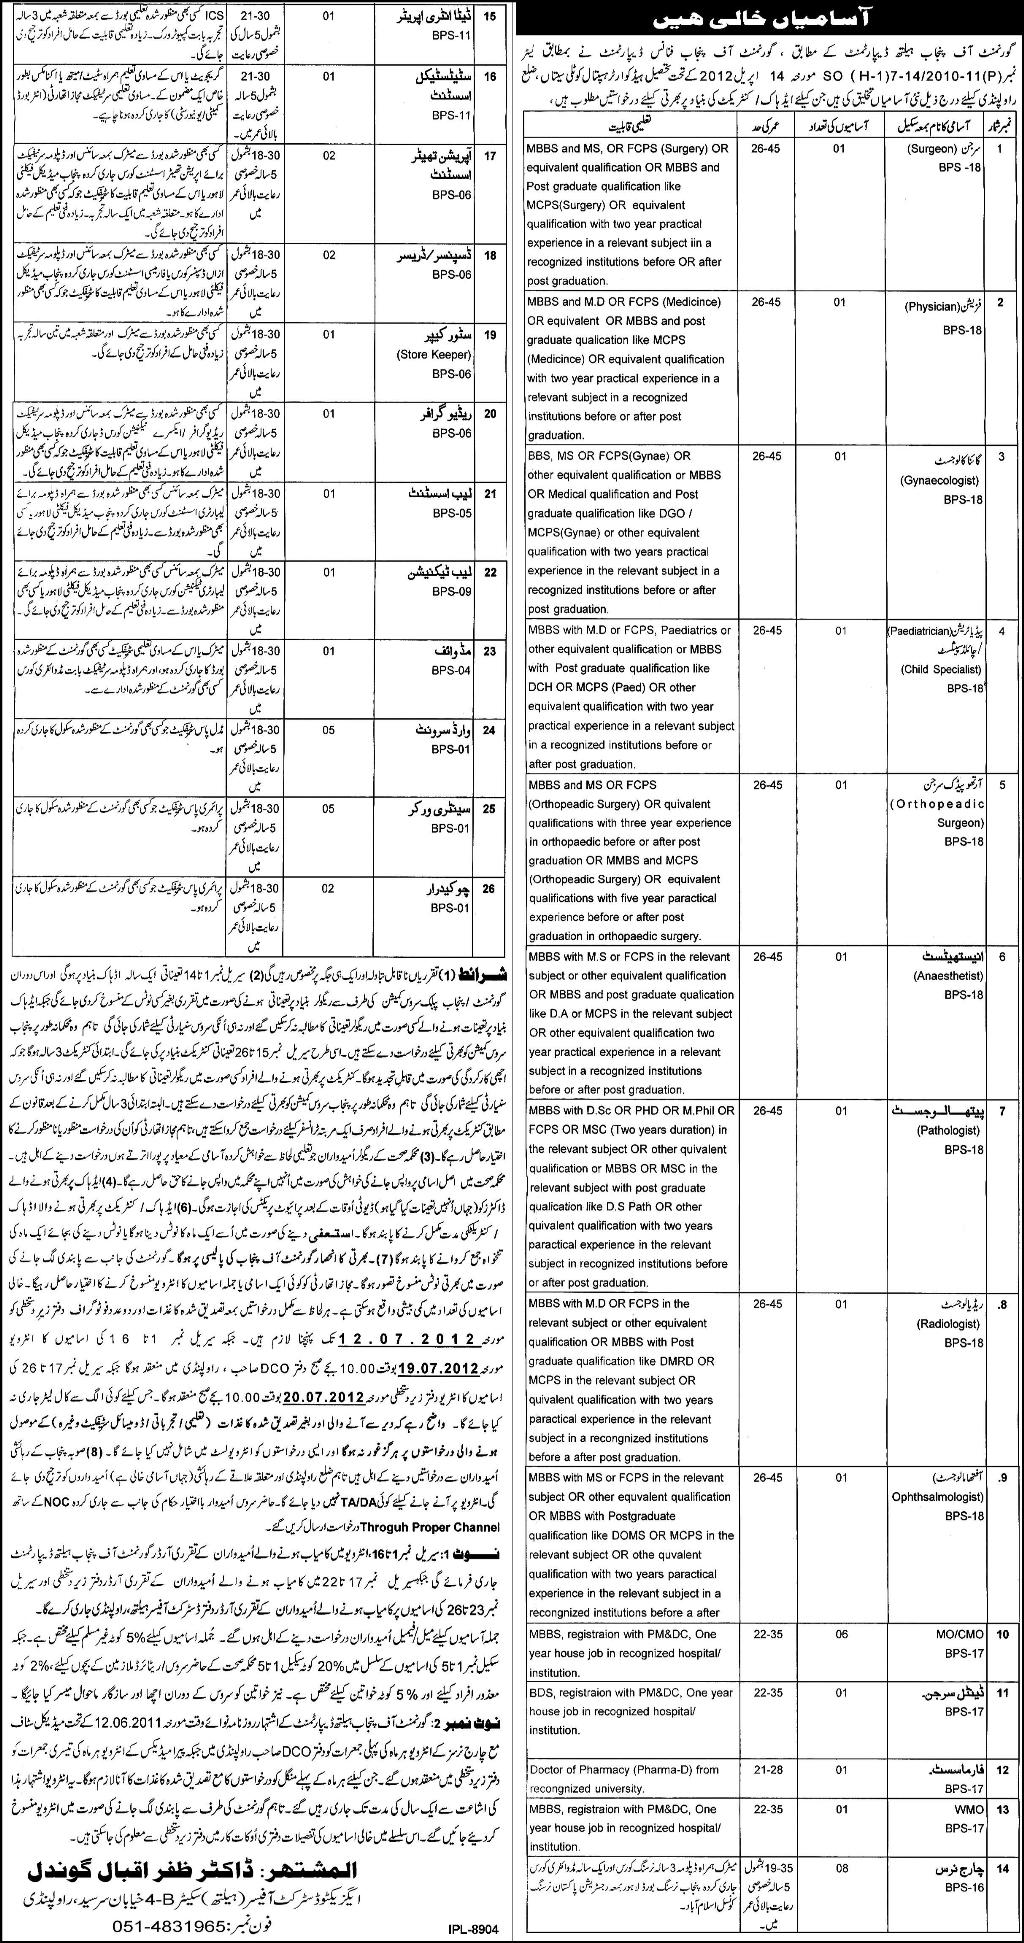 Doctors and Medical Staff Required by Health Department Government of Punjab (Govt. job)